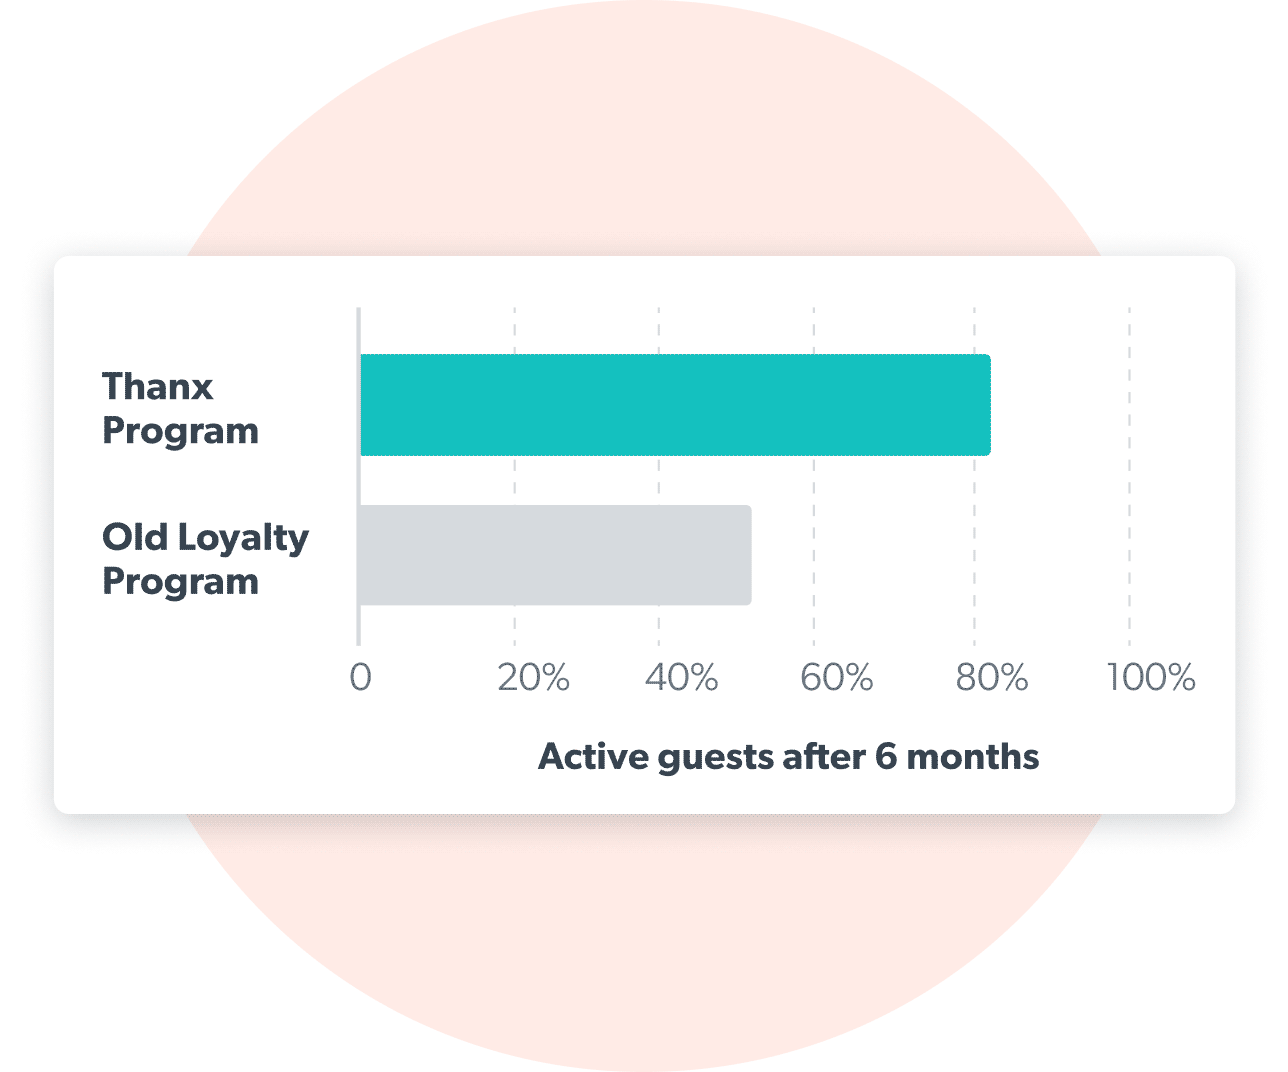 Bar chart showing old loyalty program vs on Thanx